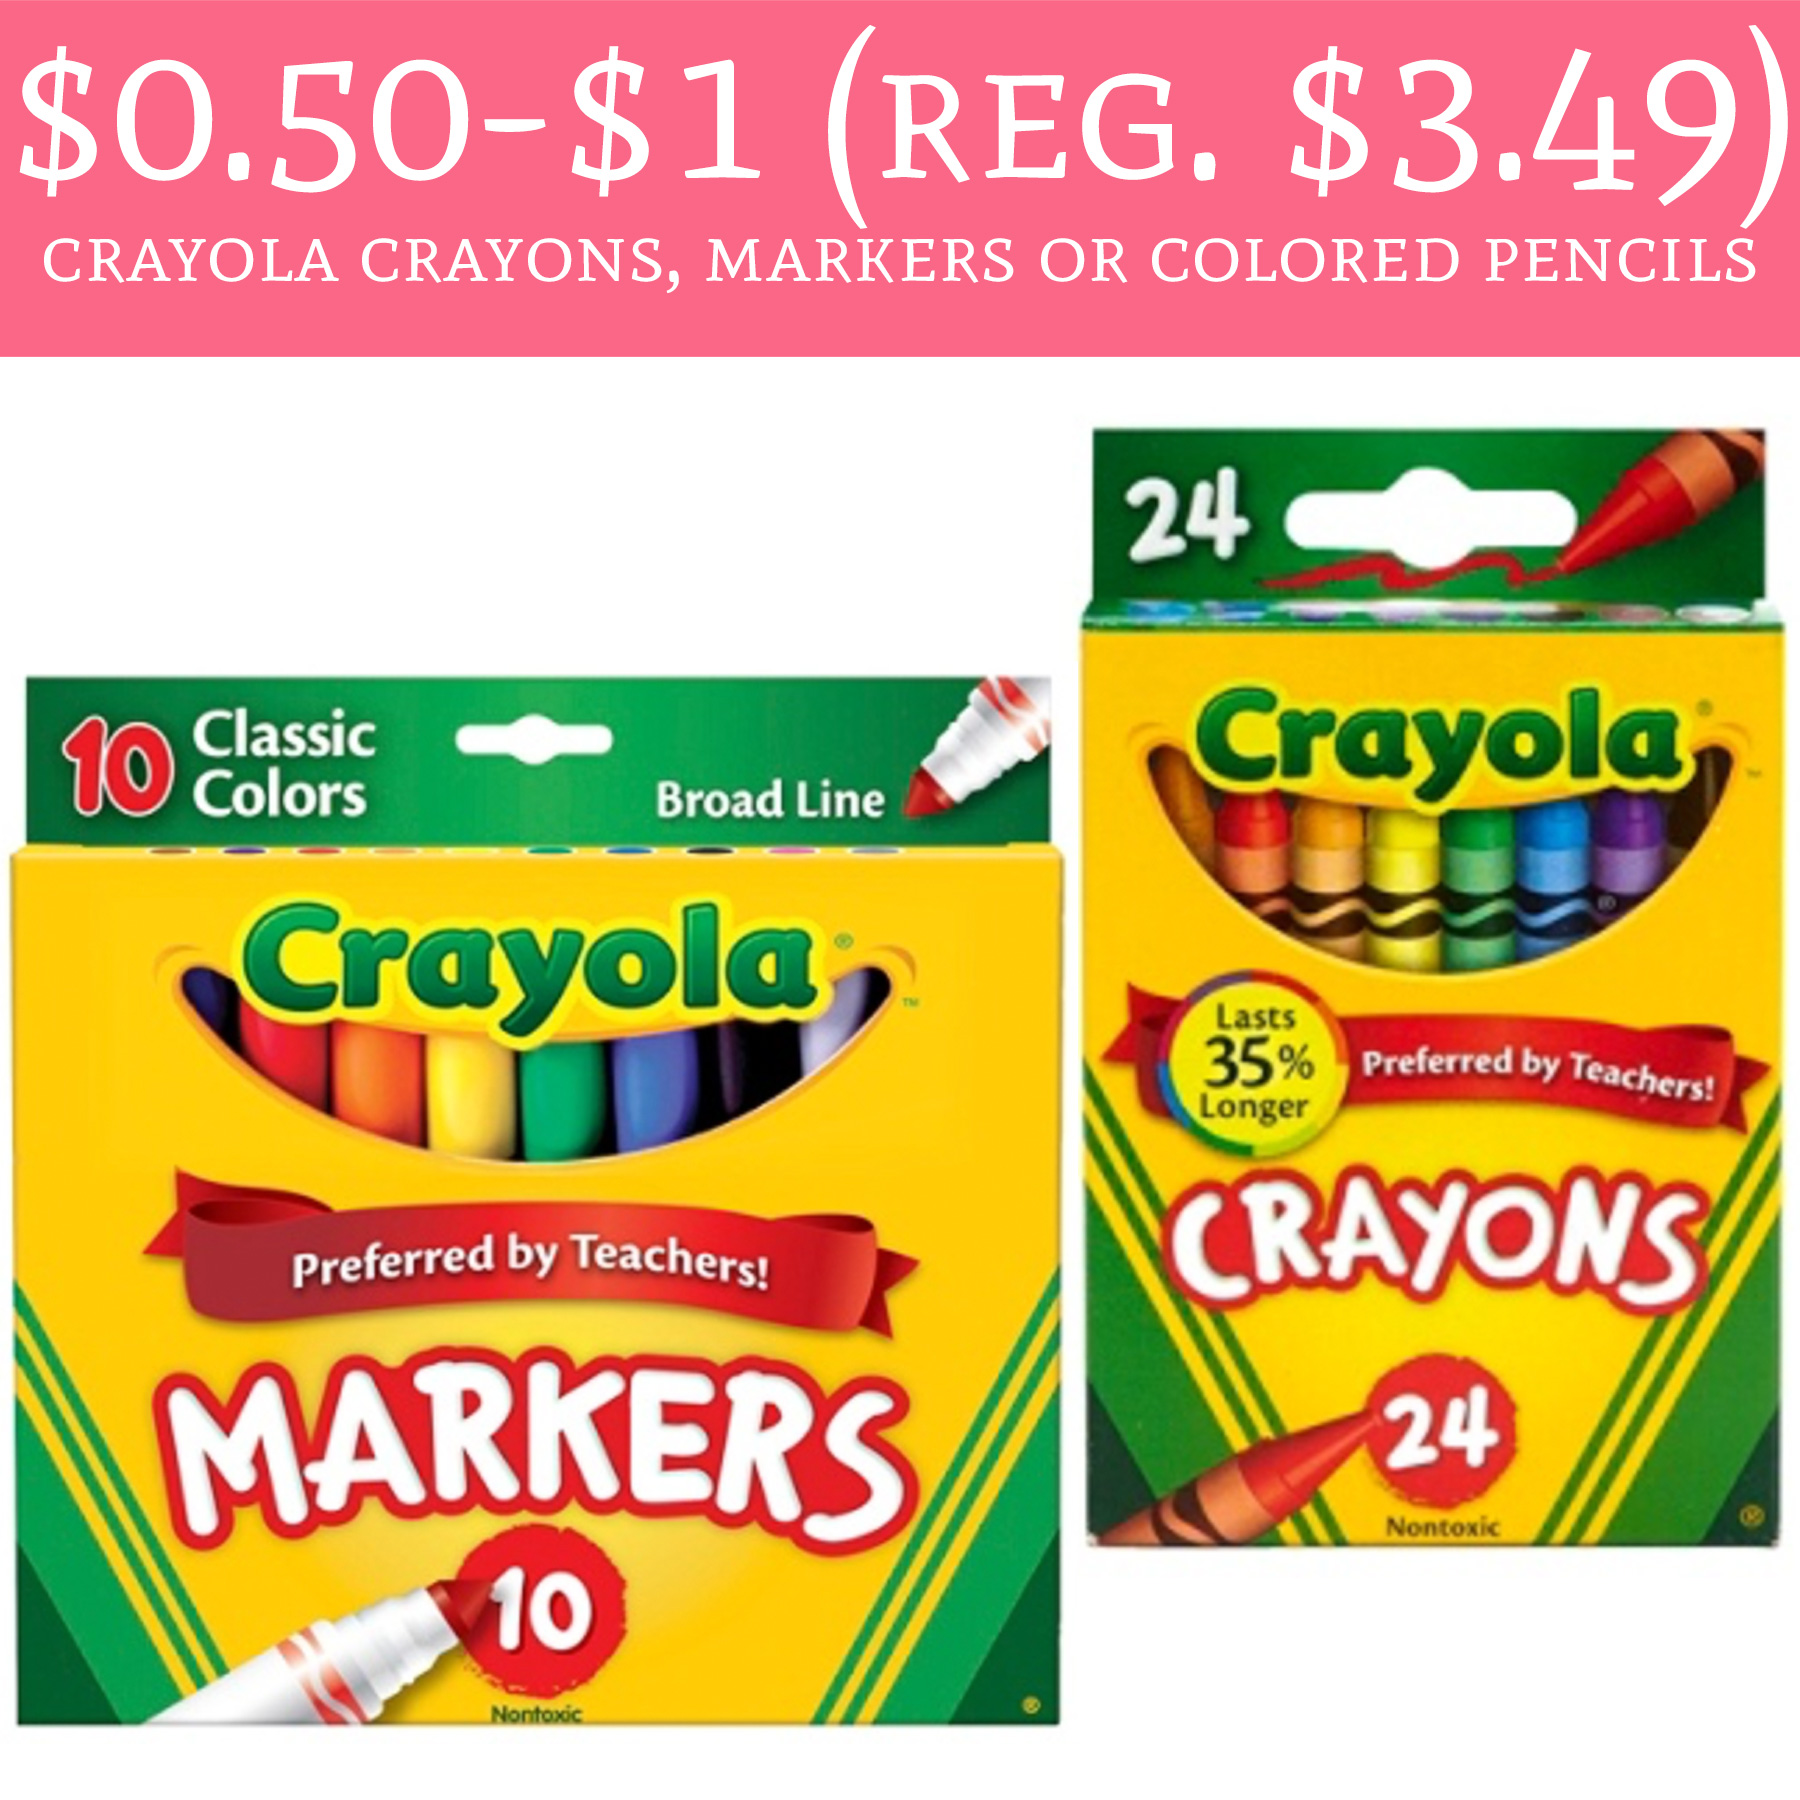 $0.50 - $1 (Regular up to $3.49) Crayola Crayons, Markers or Colored ...